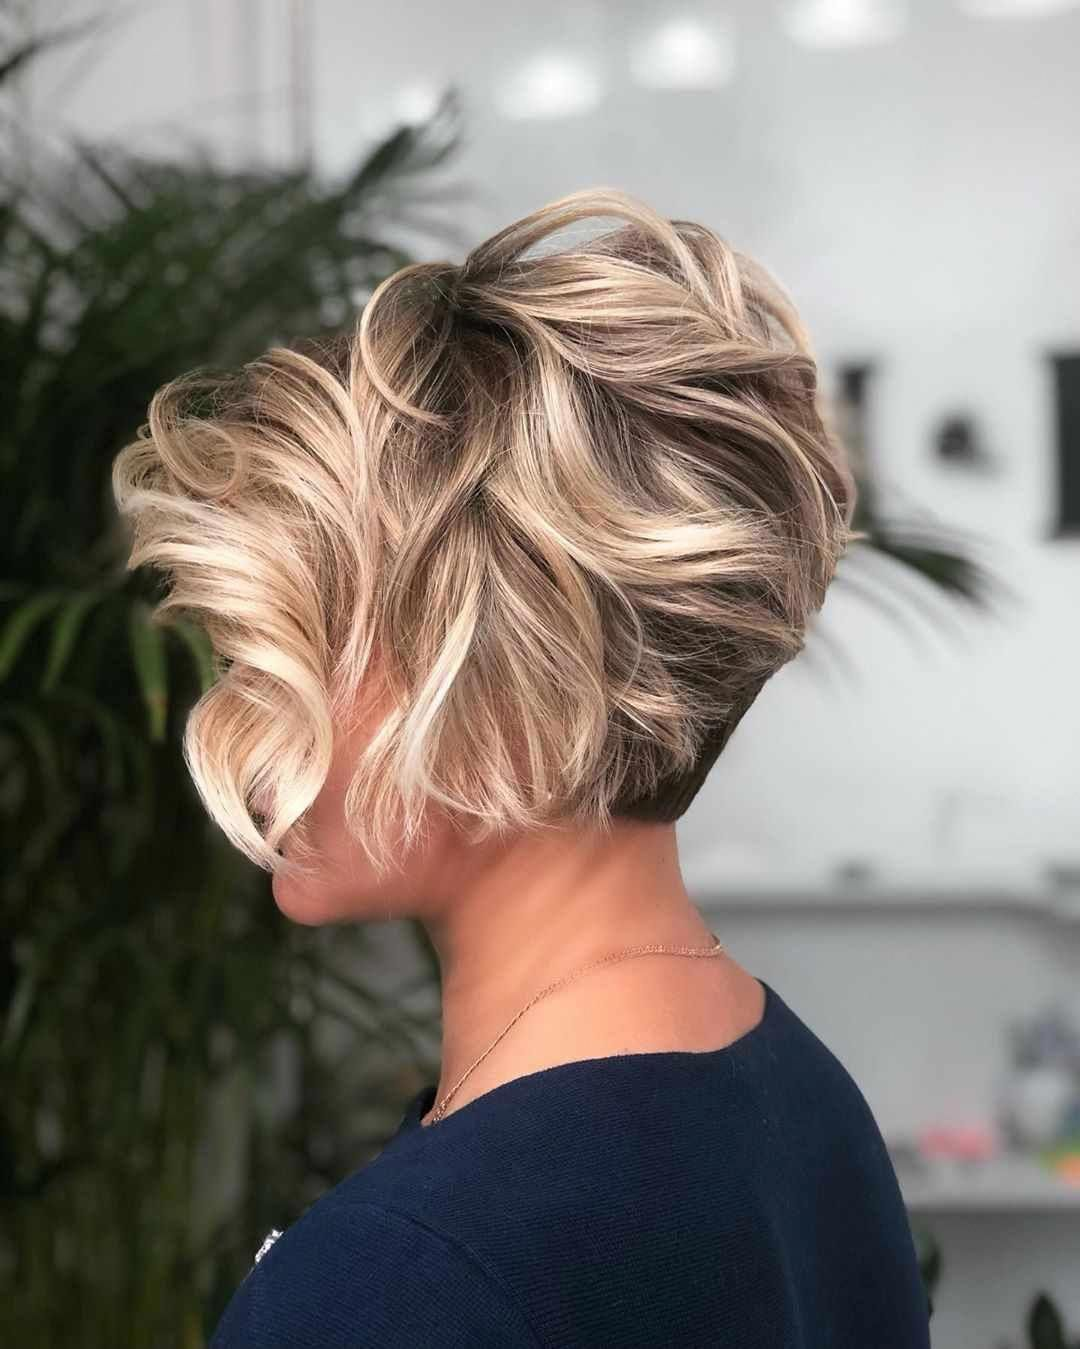 Short Bob with a Signature Curl - 30 Short Straight Hairstyles and Haircuts for Stylish Girls - The Trending Hairstyle